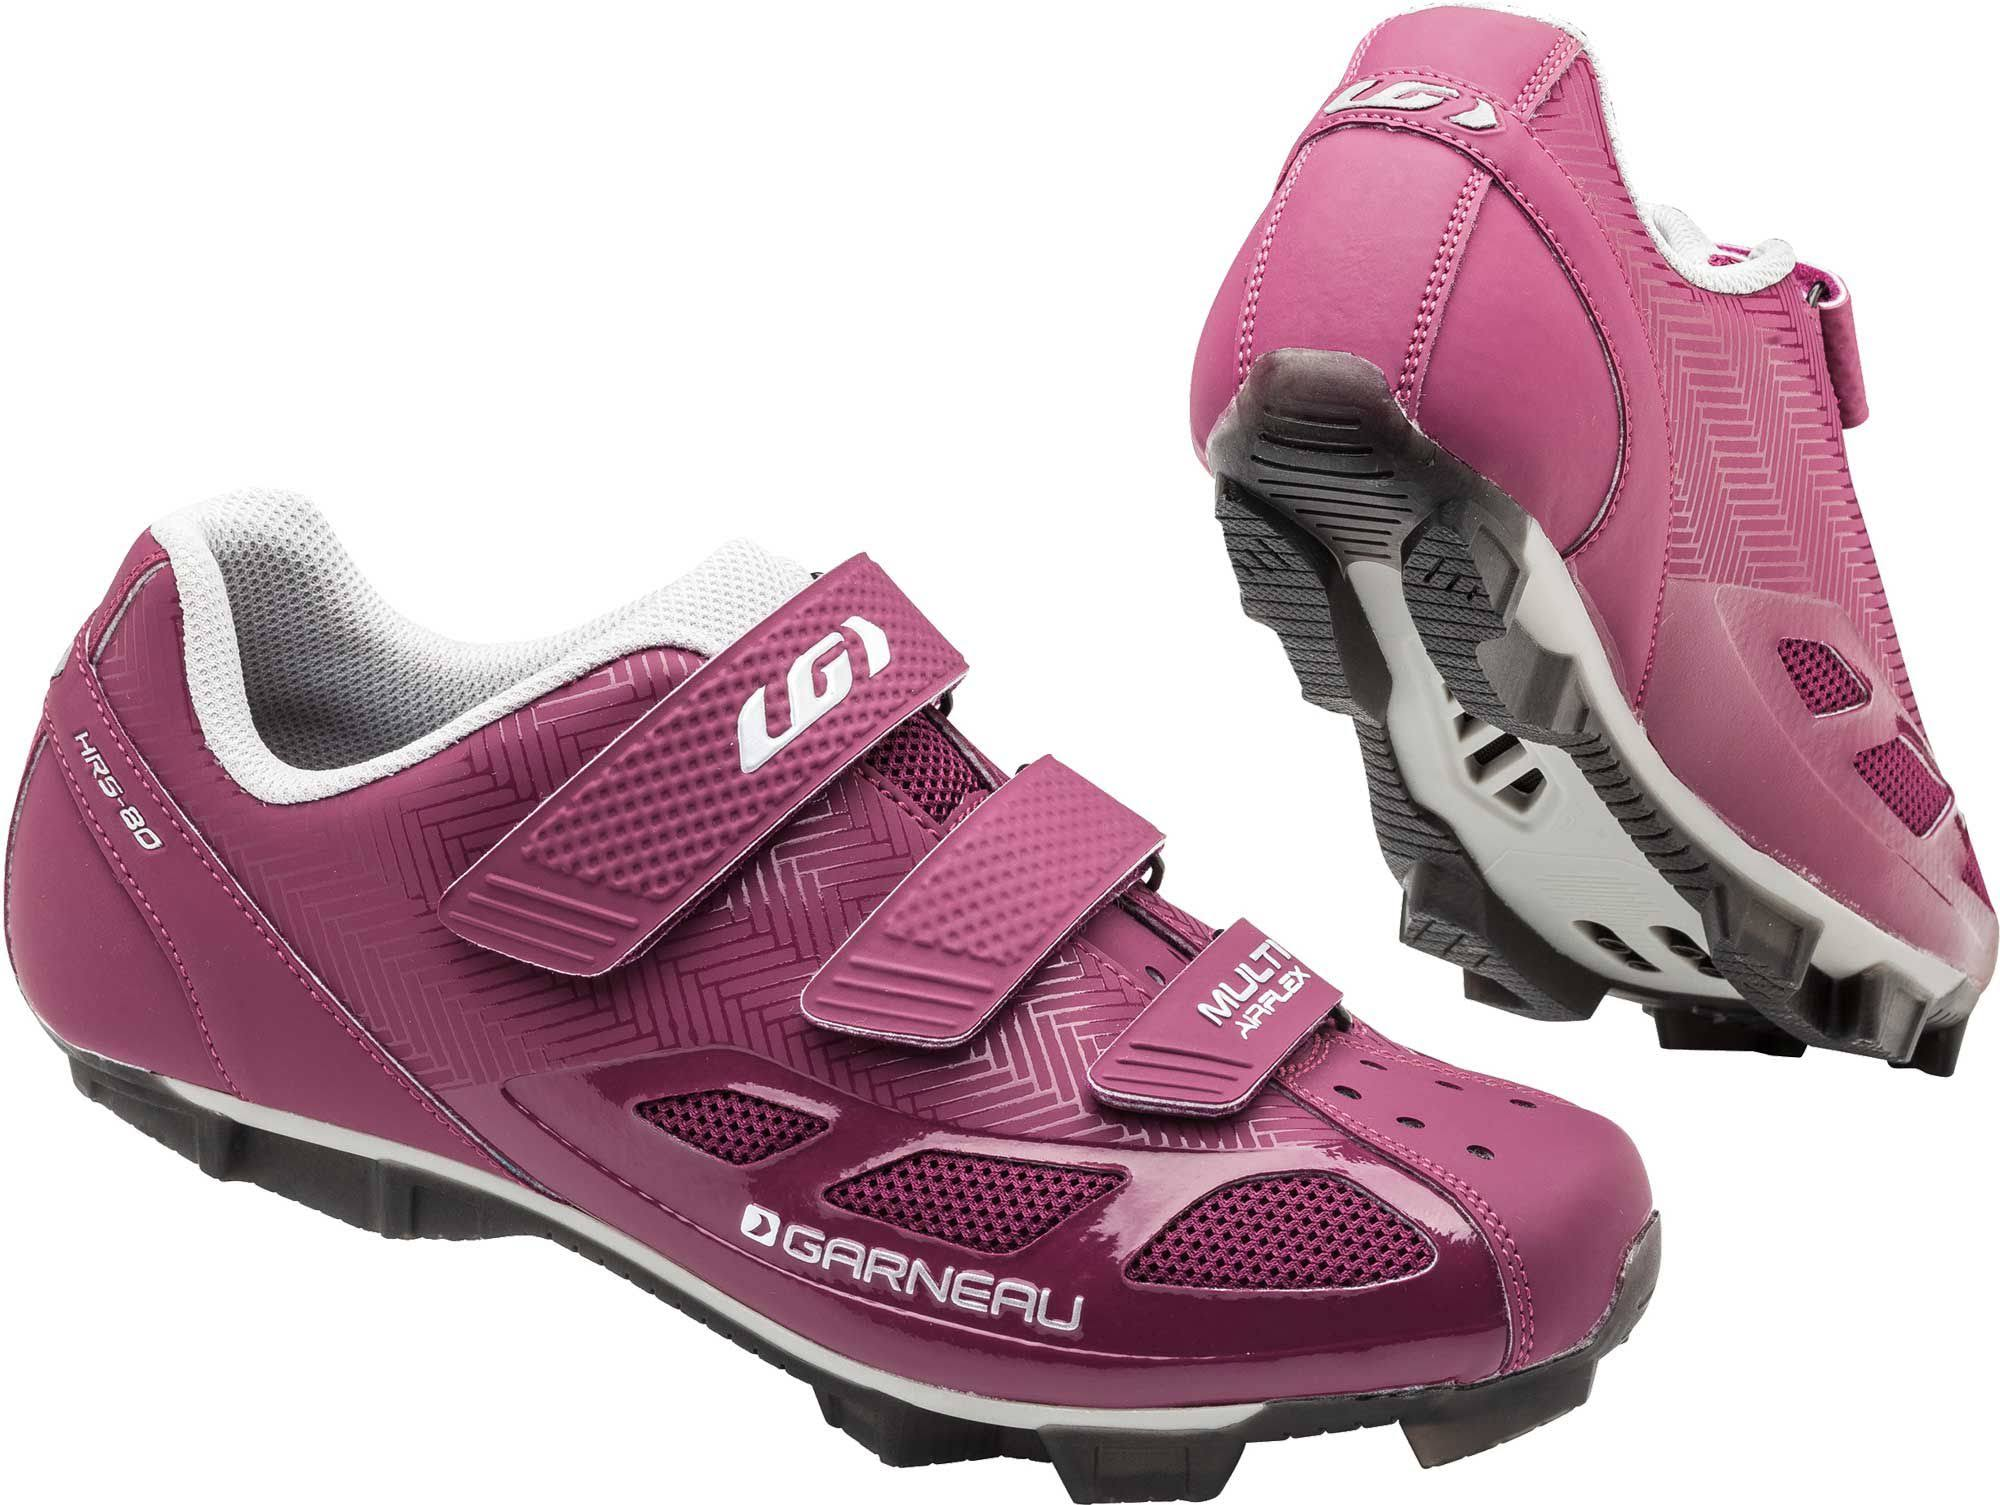 Louis Garneau Women's Multi Air Flex Cycling Shoes - Magenta and Drizzle, 7.5 US